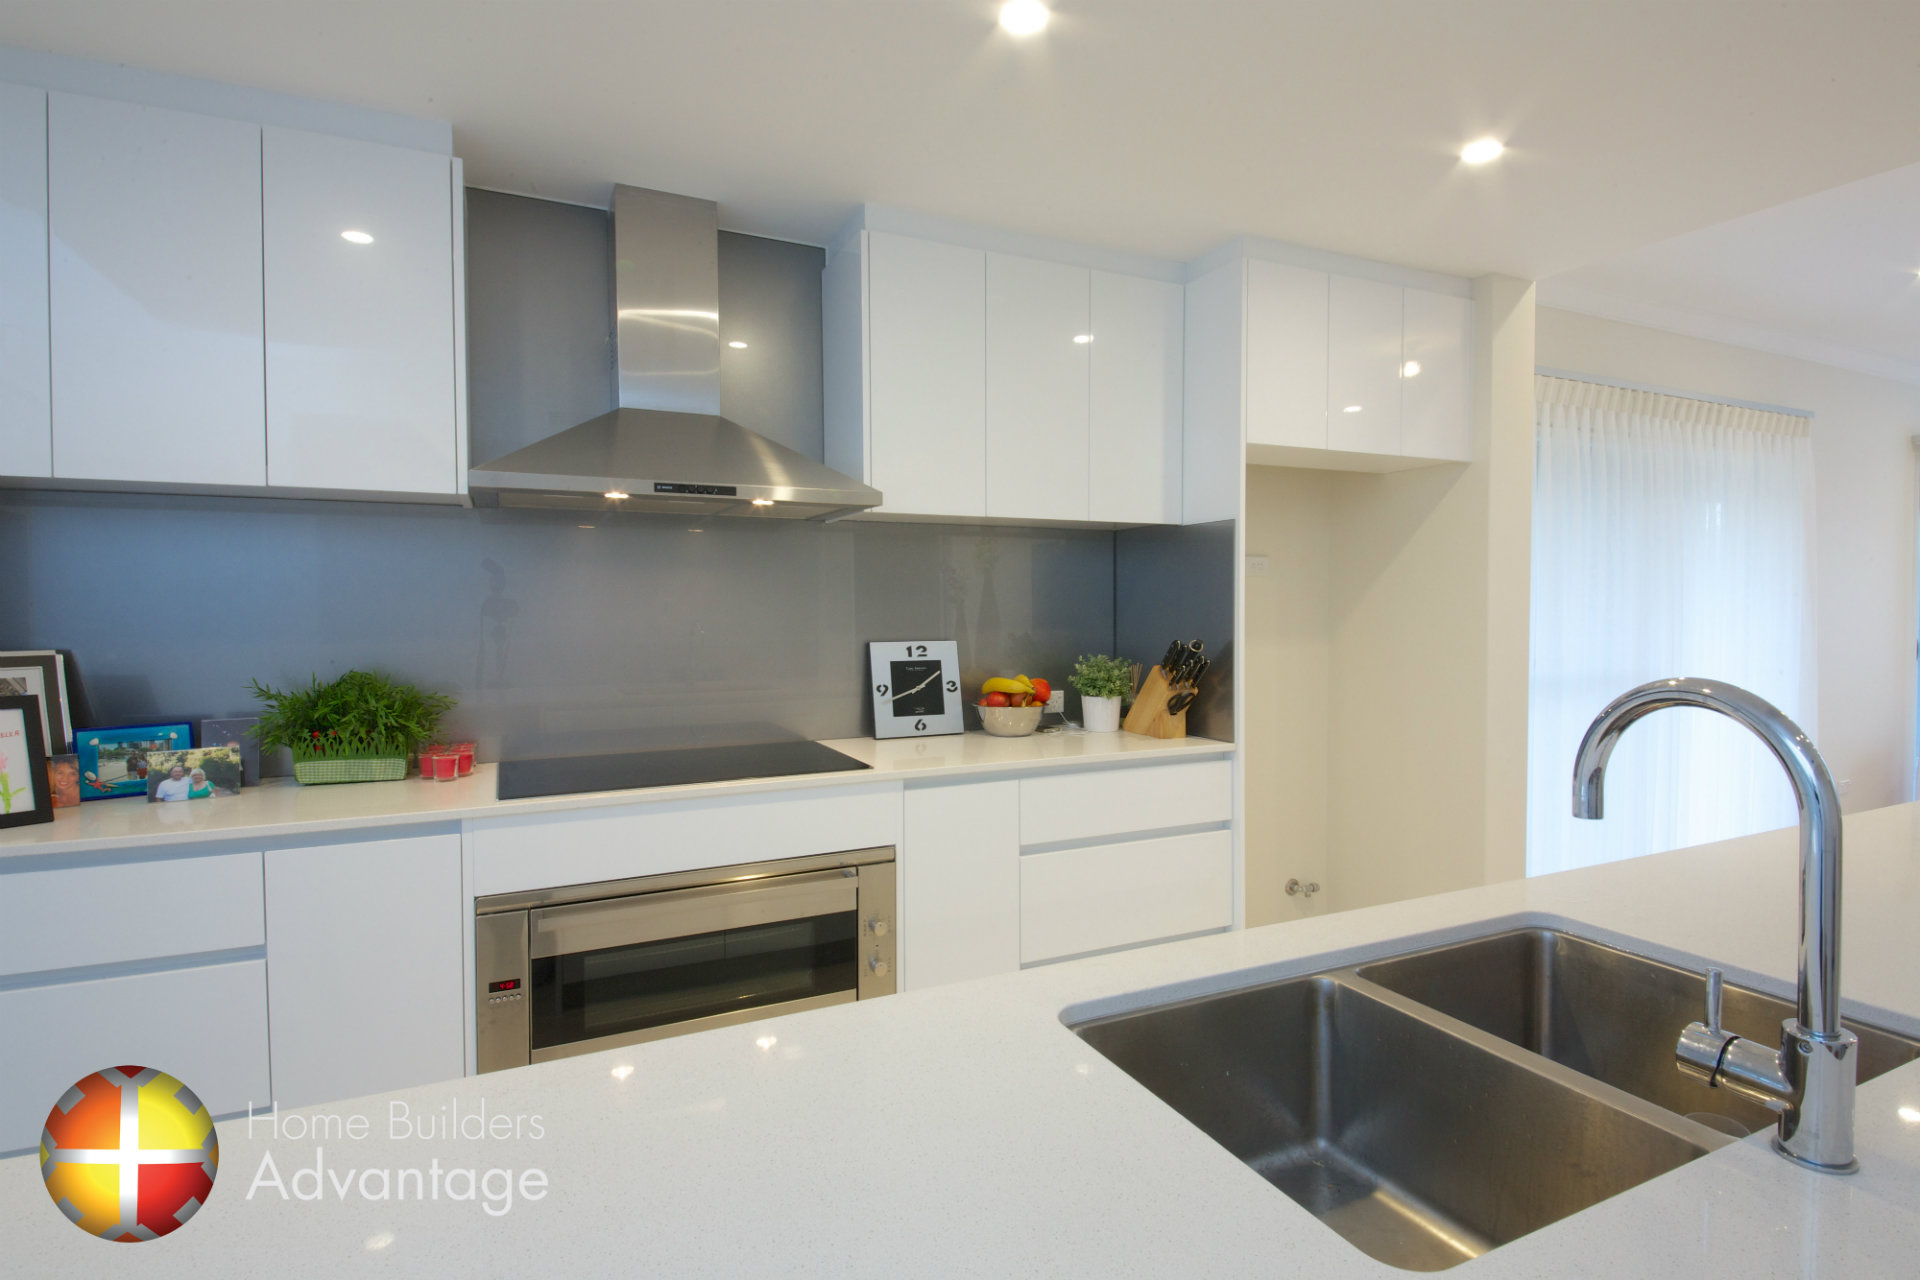 Modern kitchen designs perth seamless modern kitchen for Kitchen designs perth